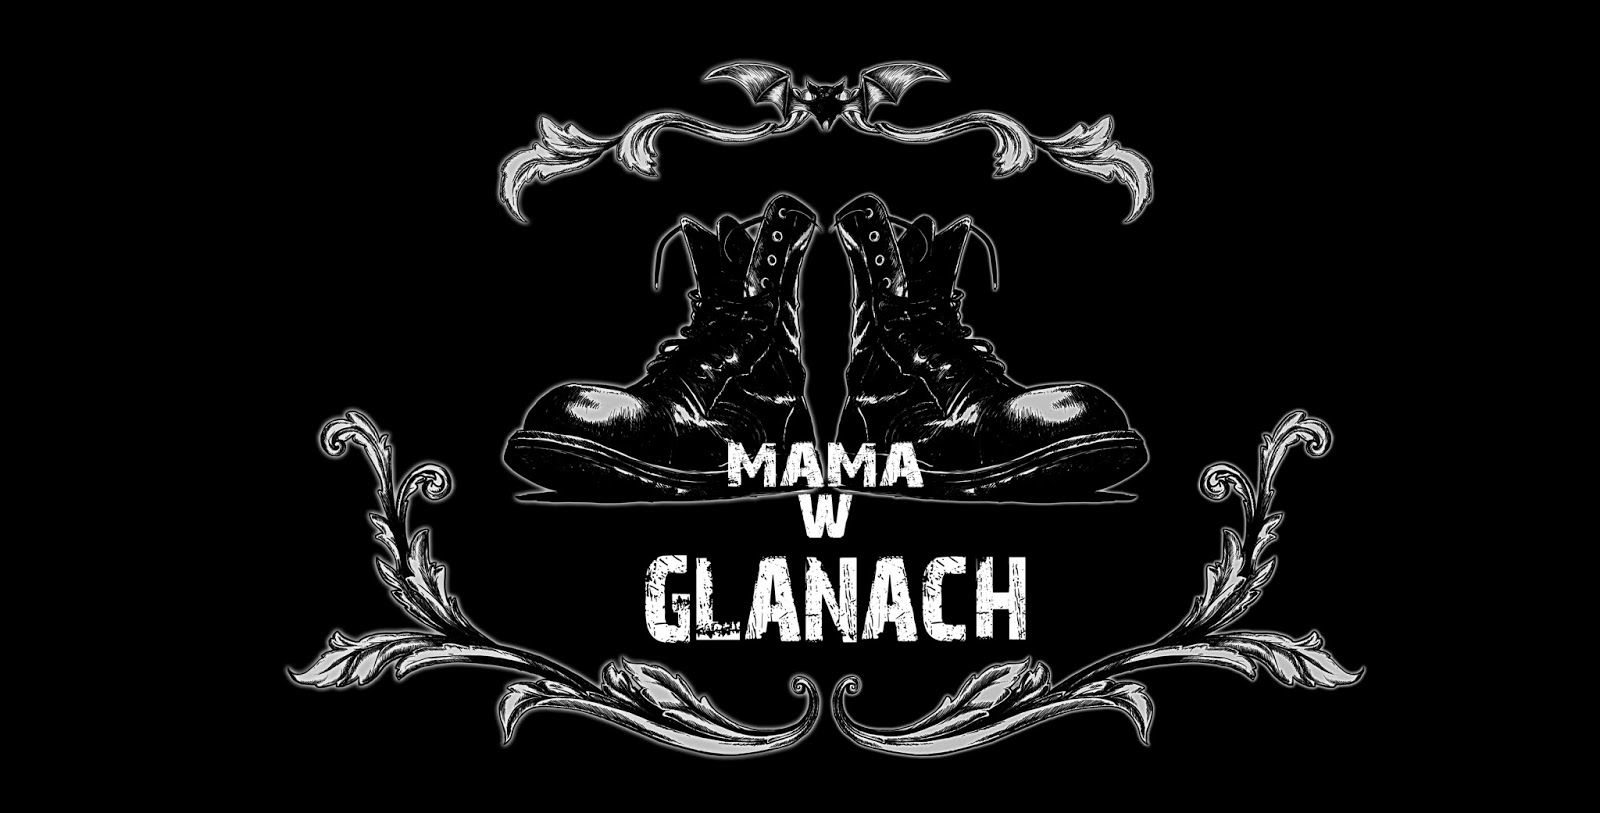 https://www.facebook.com/mamawglanach